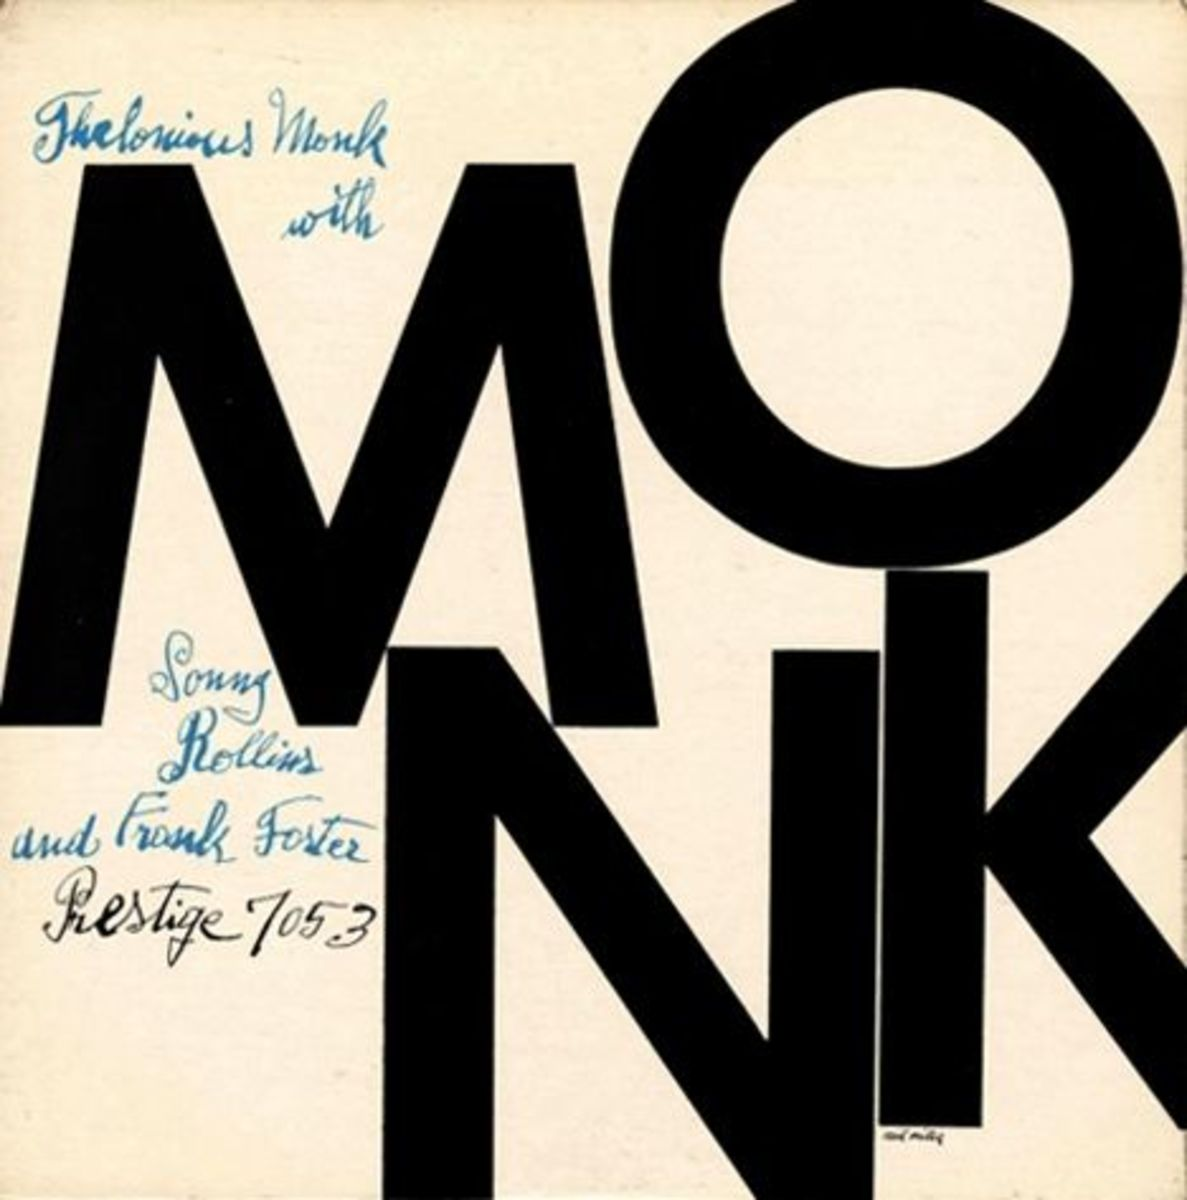 "Thelonious Monk with Sonny Rollins and Frank Foster Prestige Records 7053.12"" LP Vinyl Record with Album Cover Art by Andy Warhol"